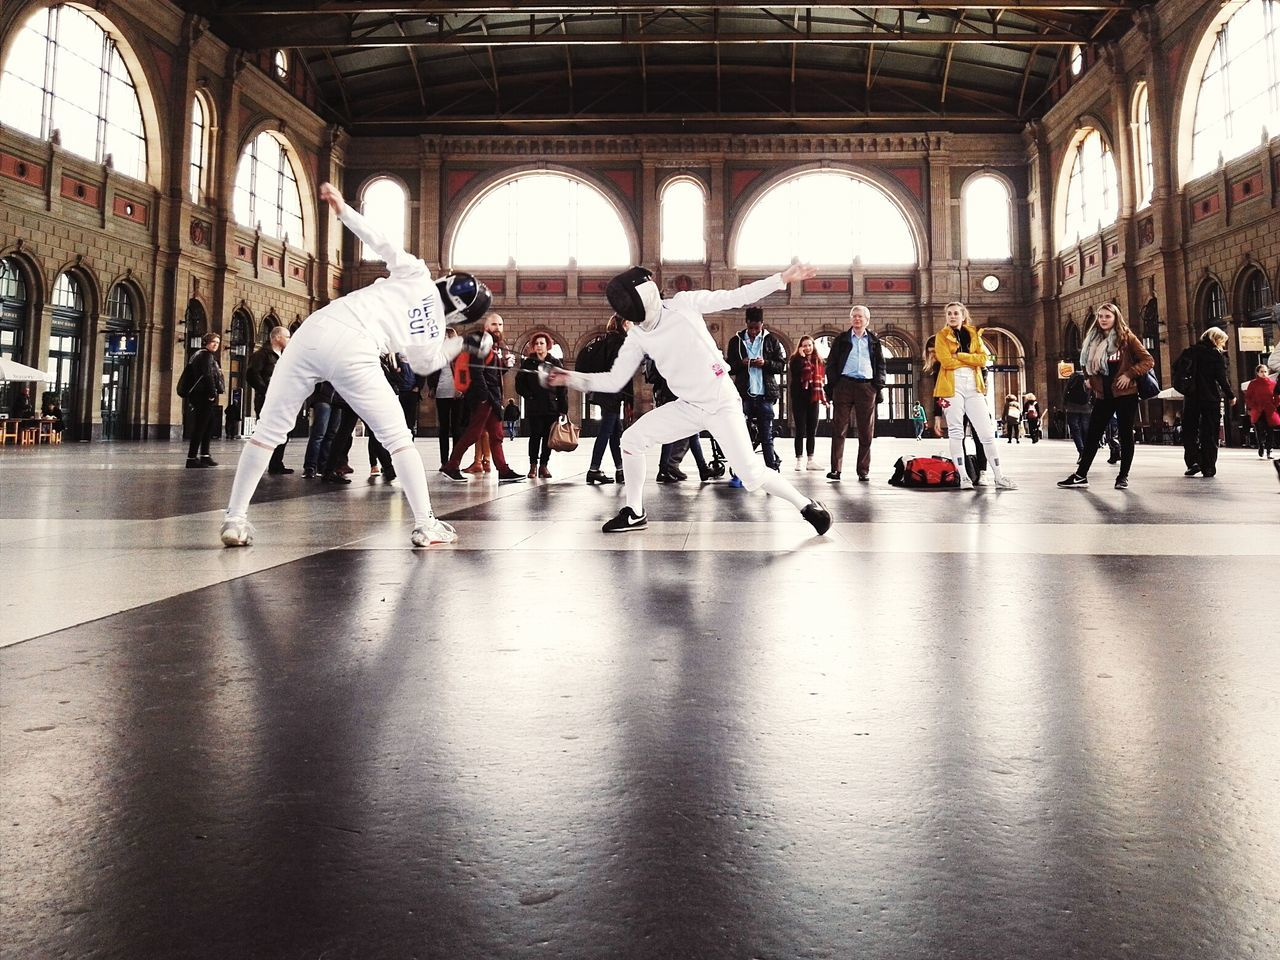 Action shot of two people fencing with witnessing spectators